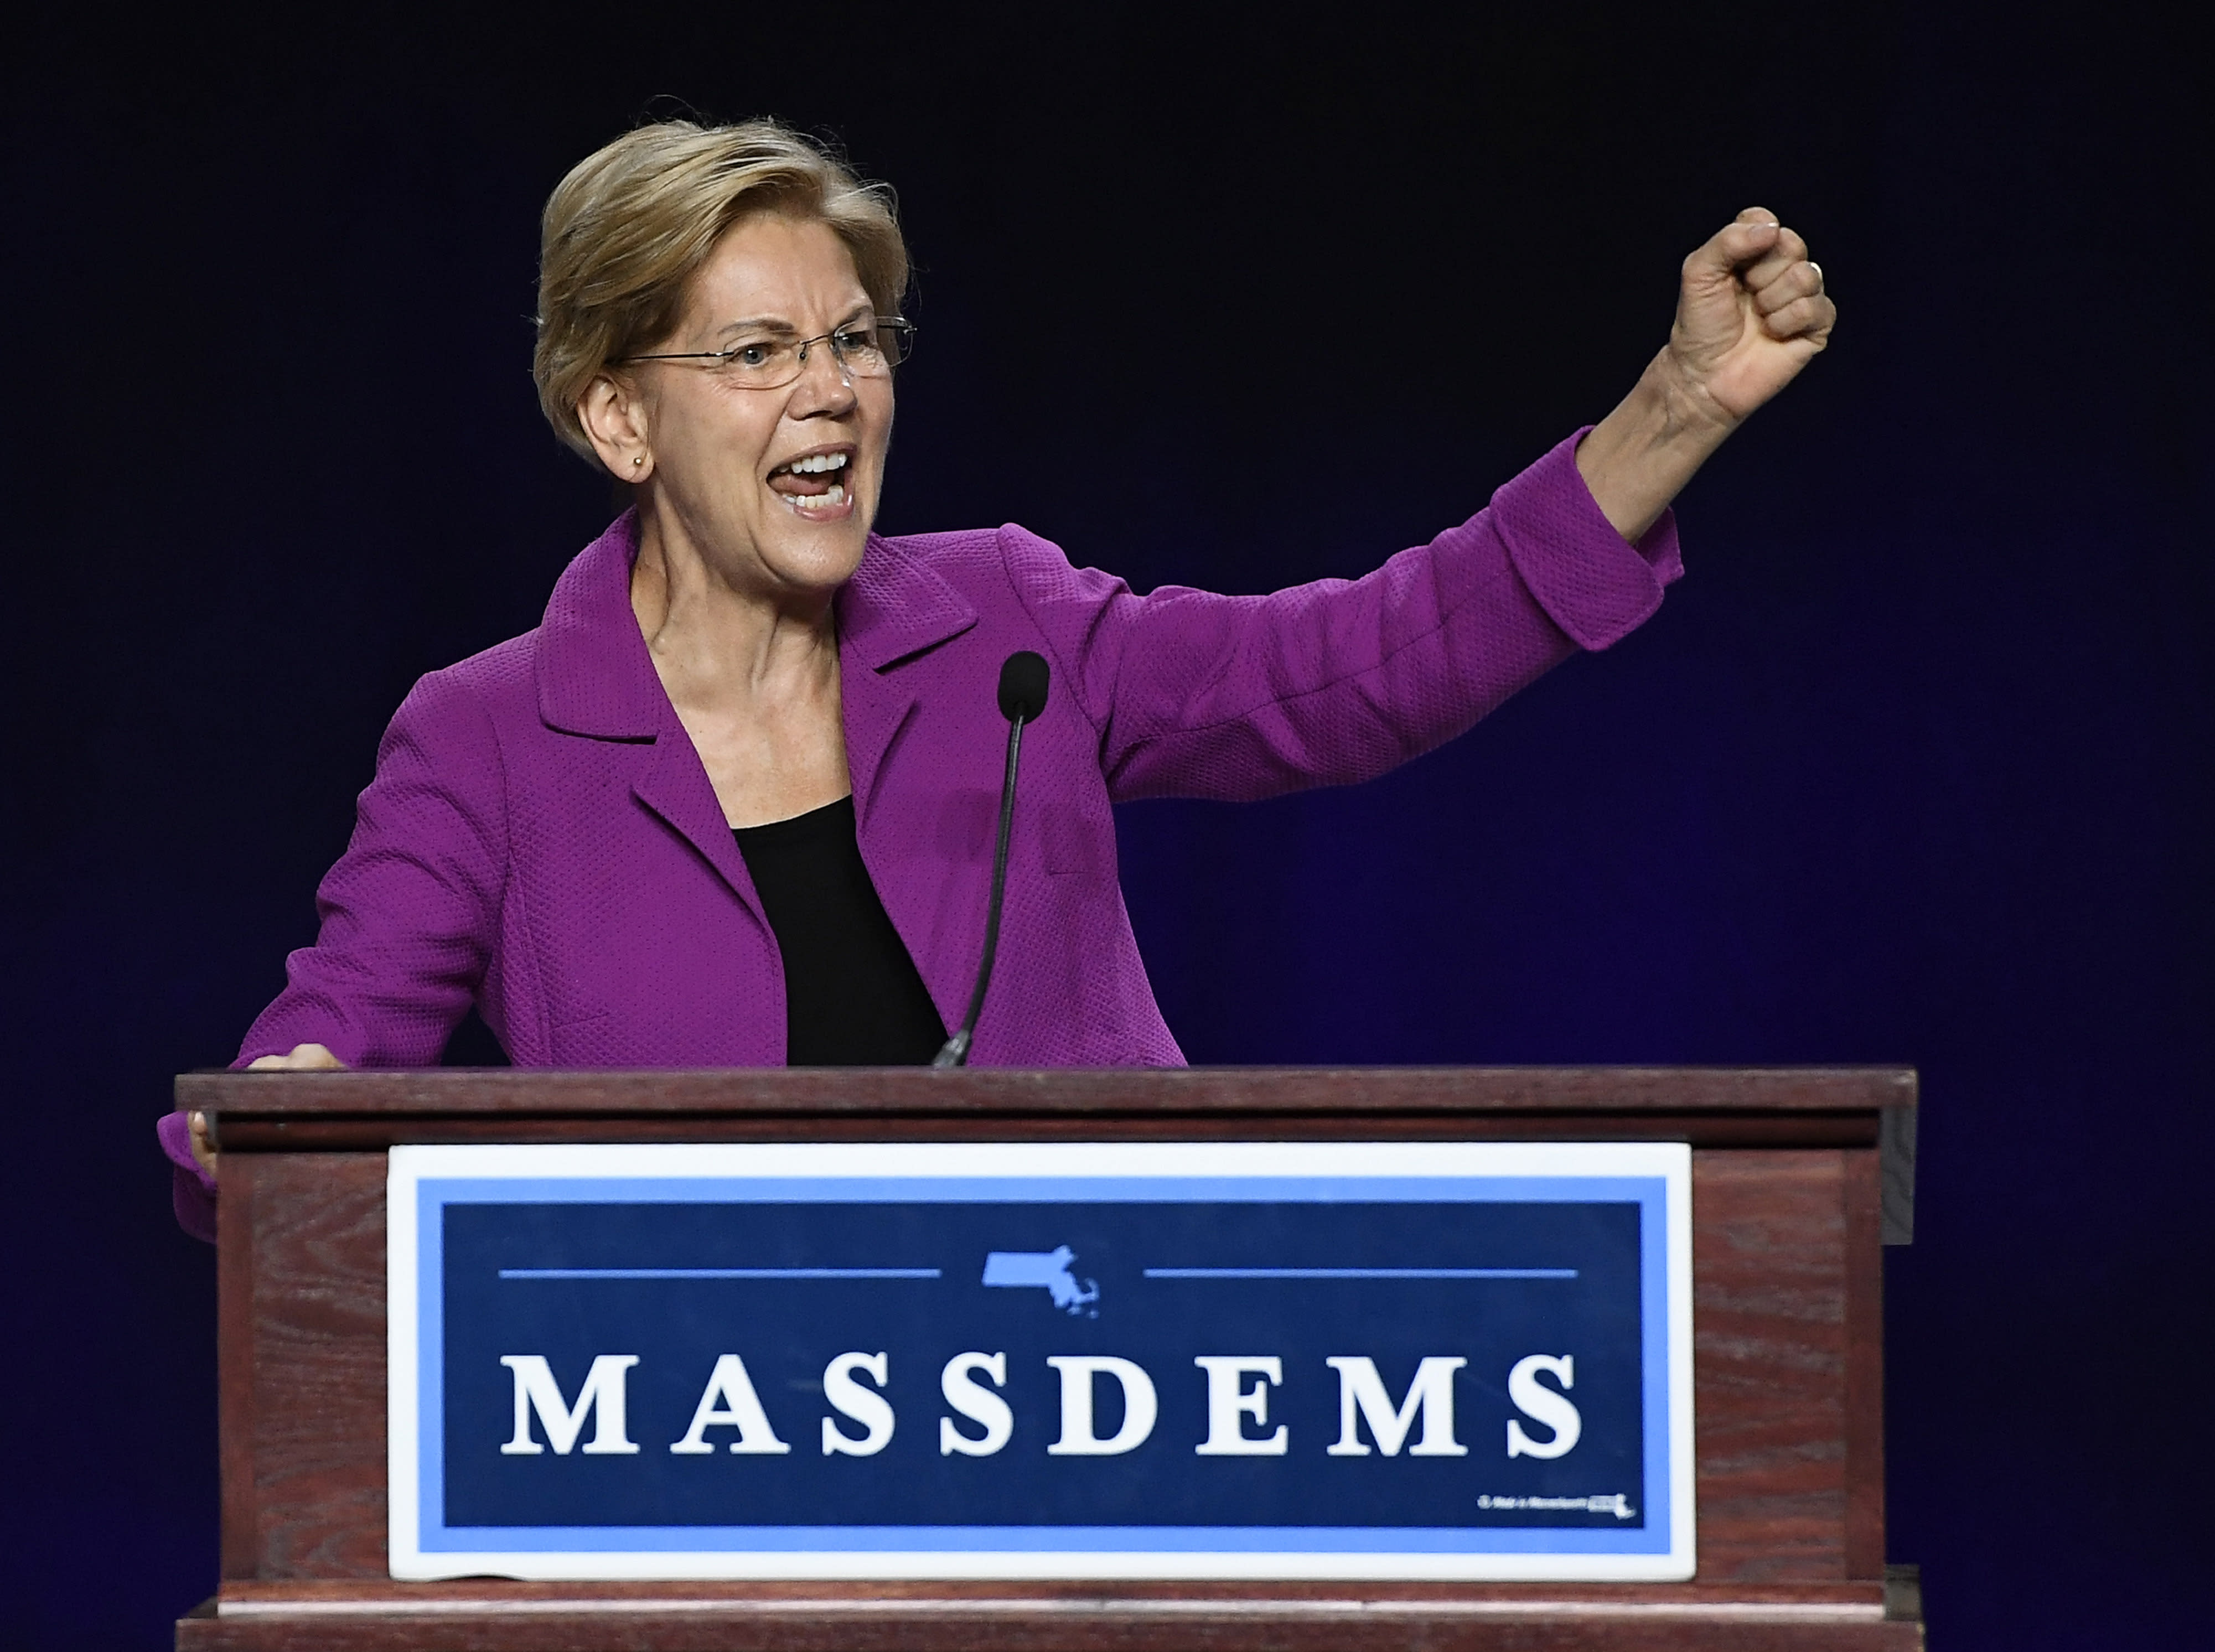 Trump is 'corruption in the flesh', presidential contender Warren says